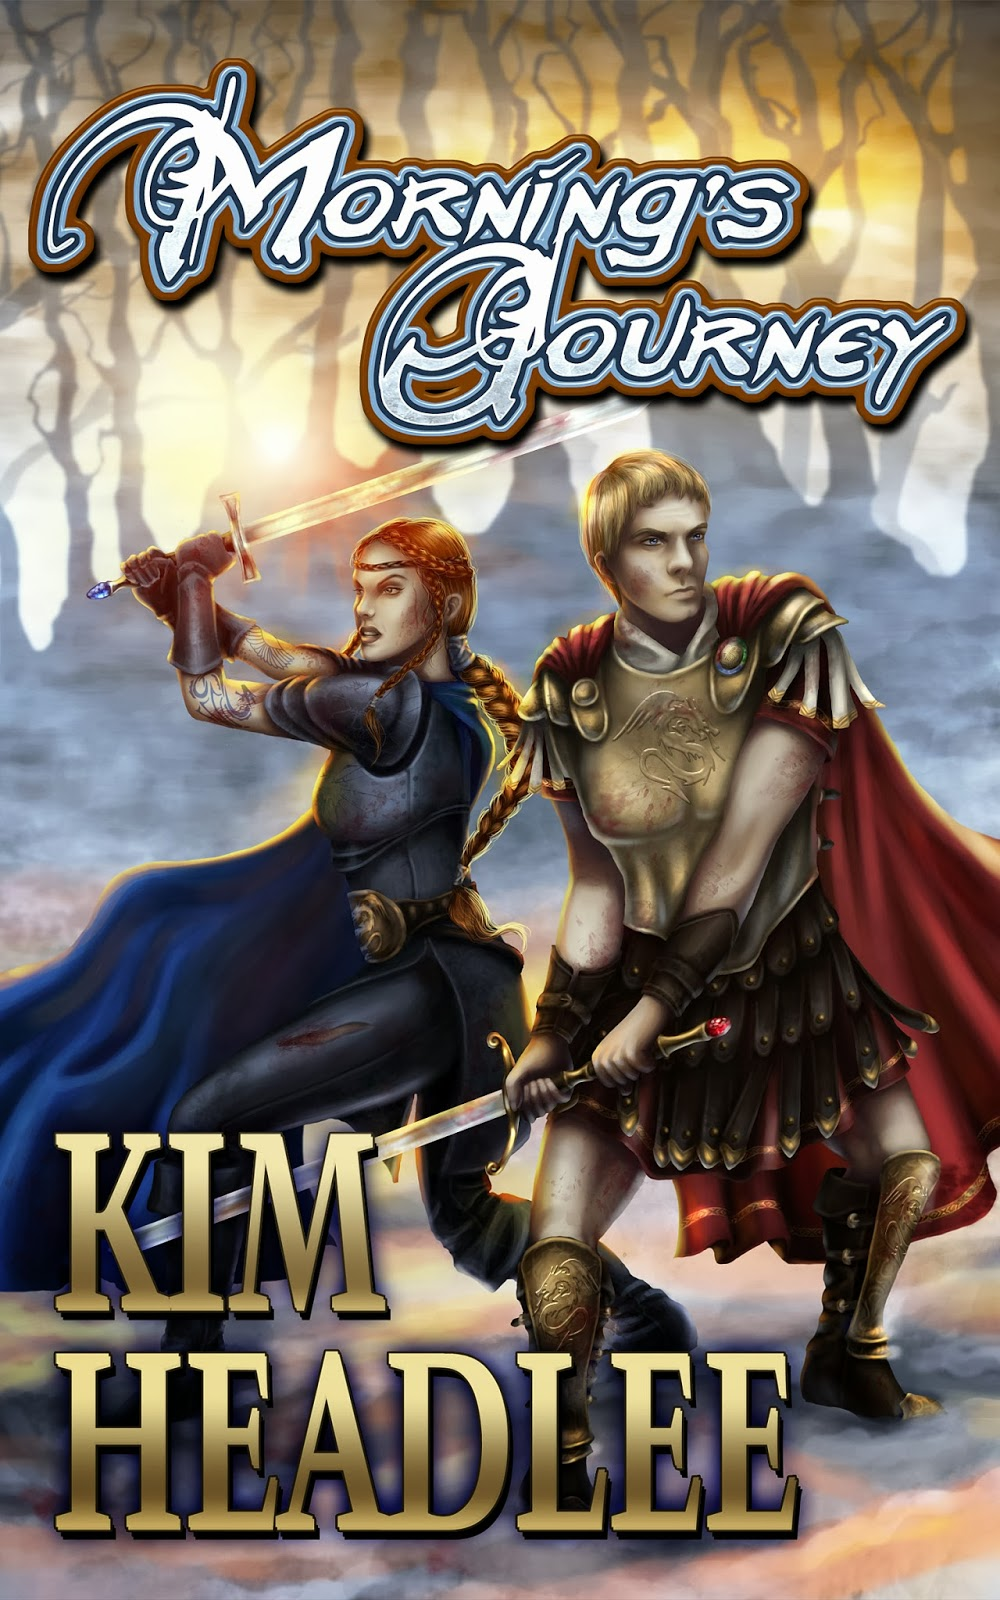 Morning's Journey by Kim Headlee